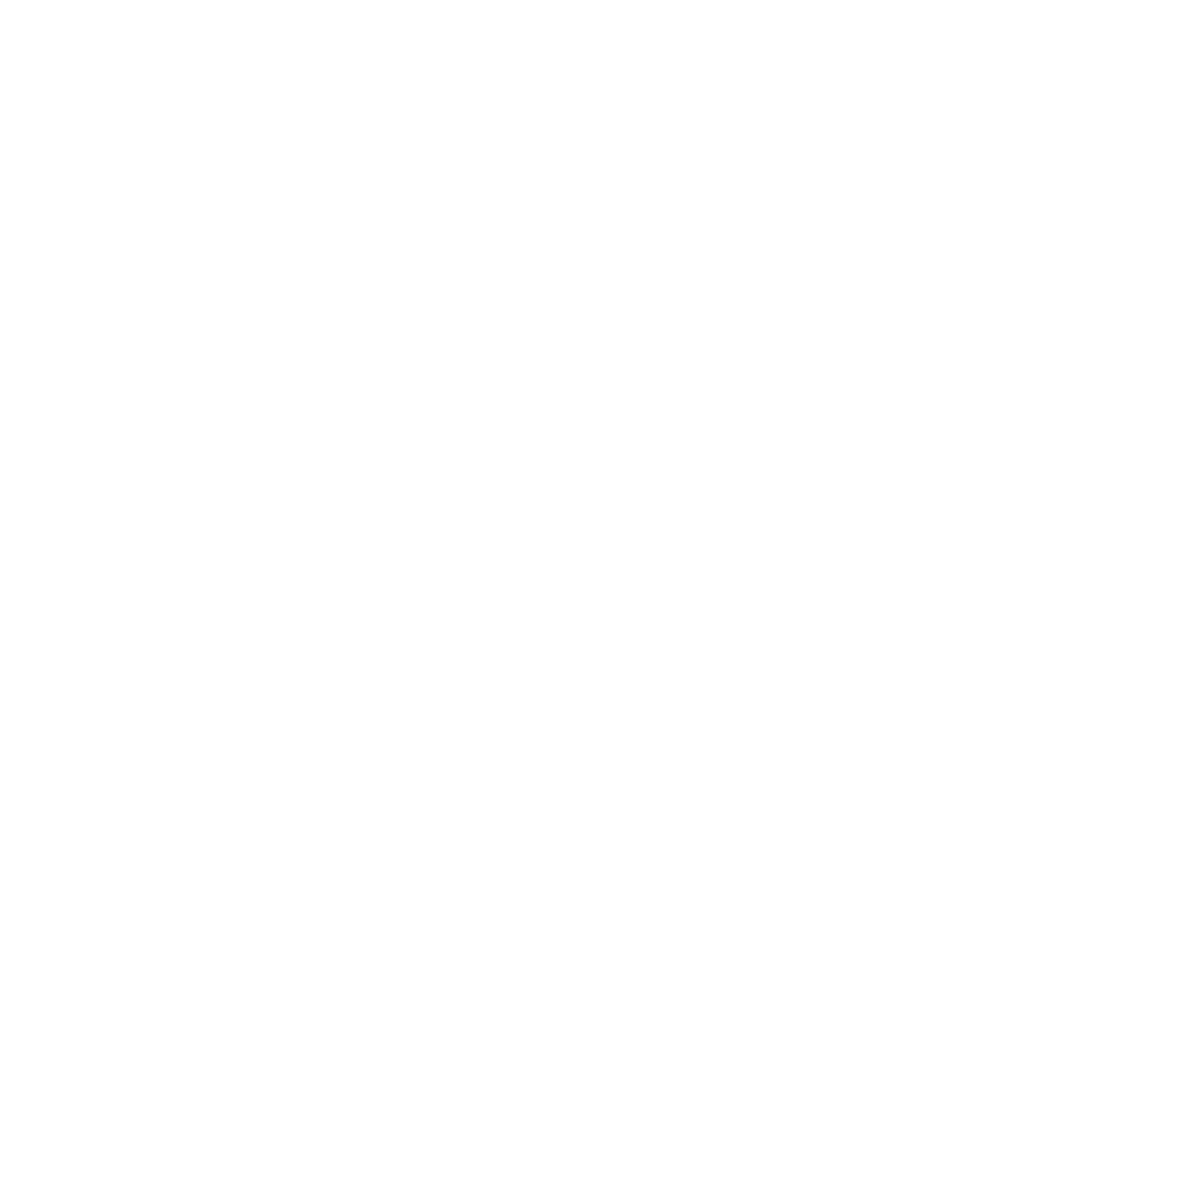 https://www.swanseadentistry.com/wp-content/uploads/2015/11/dentures-white.png